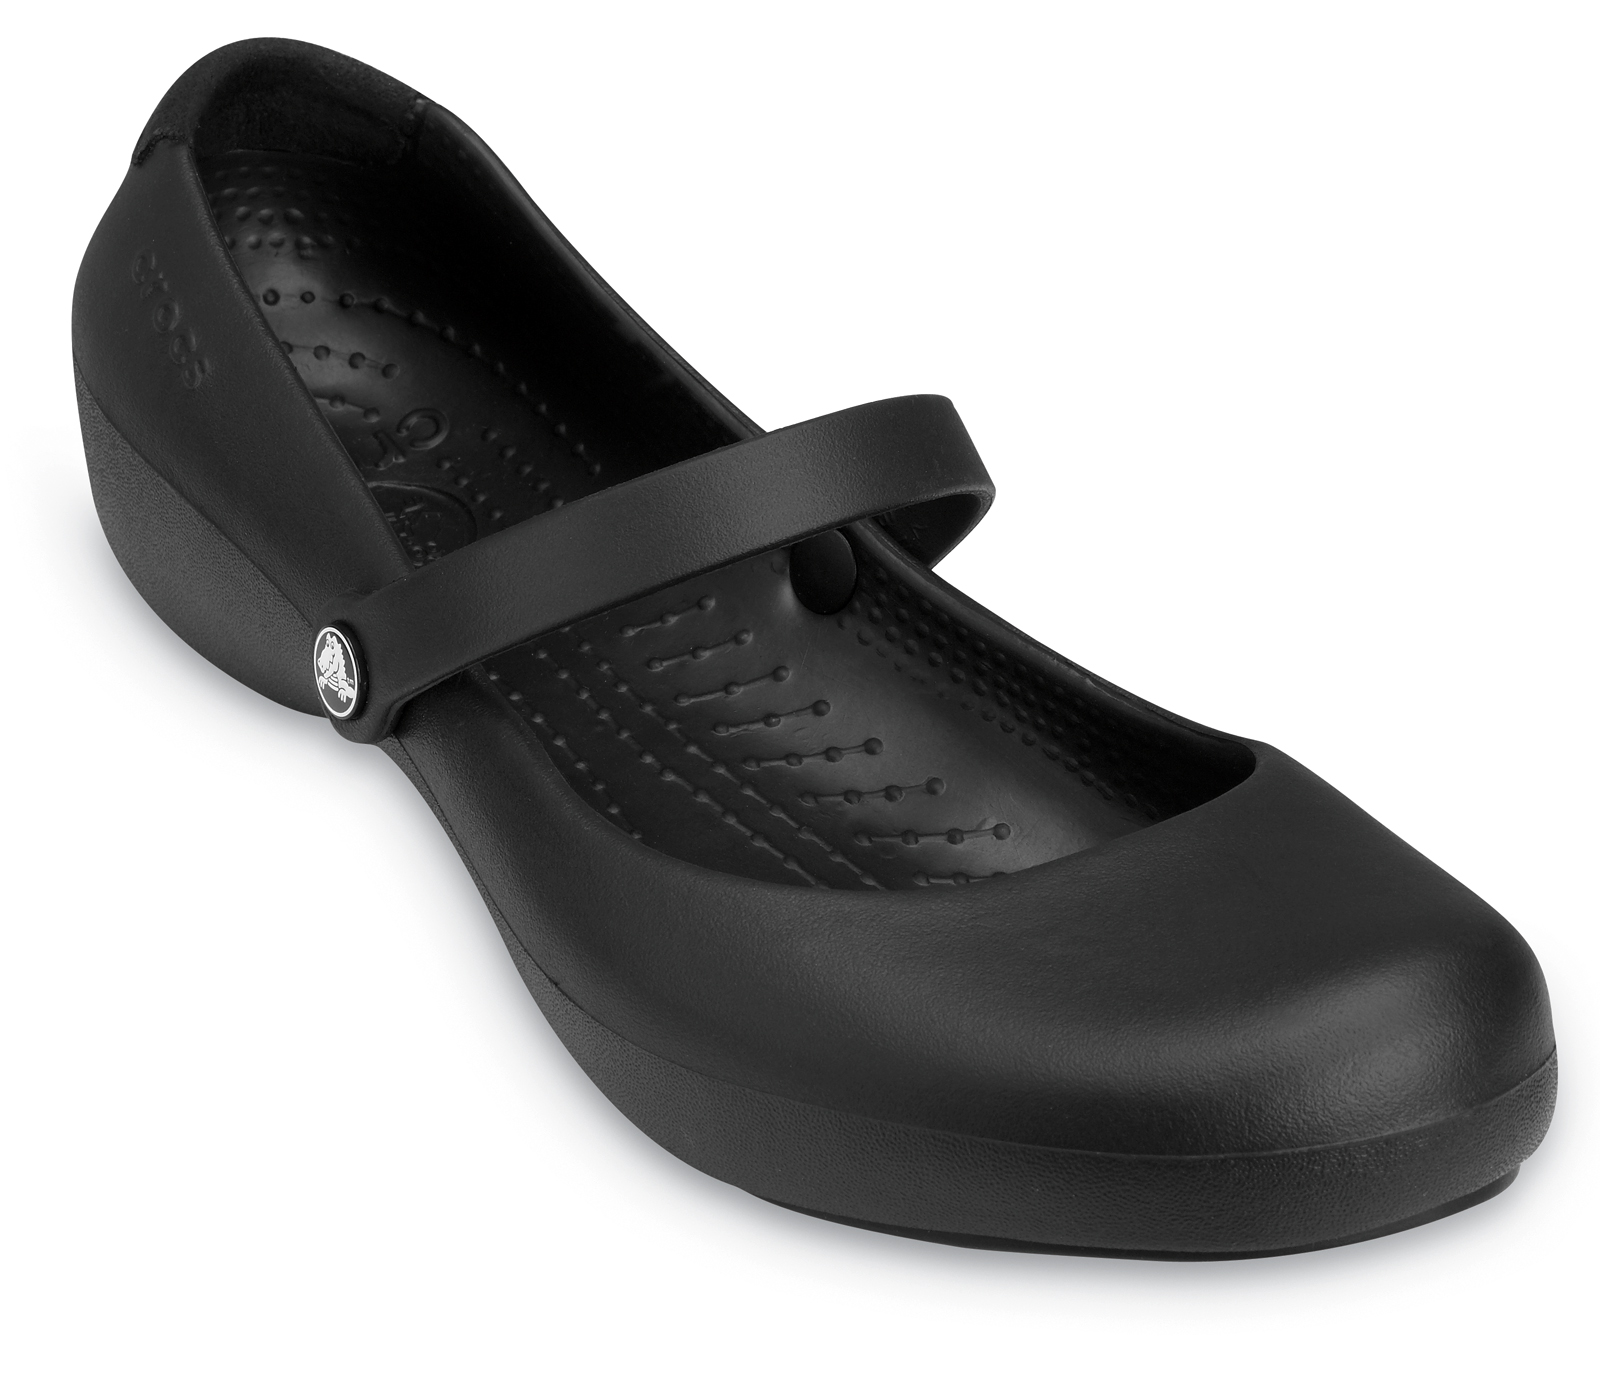 Womens new arrivals Colourful & stylish women's shoes. Update your wardrobe with new crocs shoe selections for women!